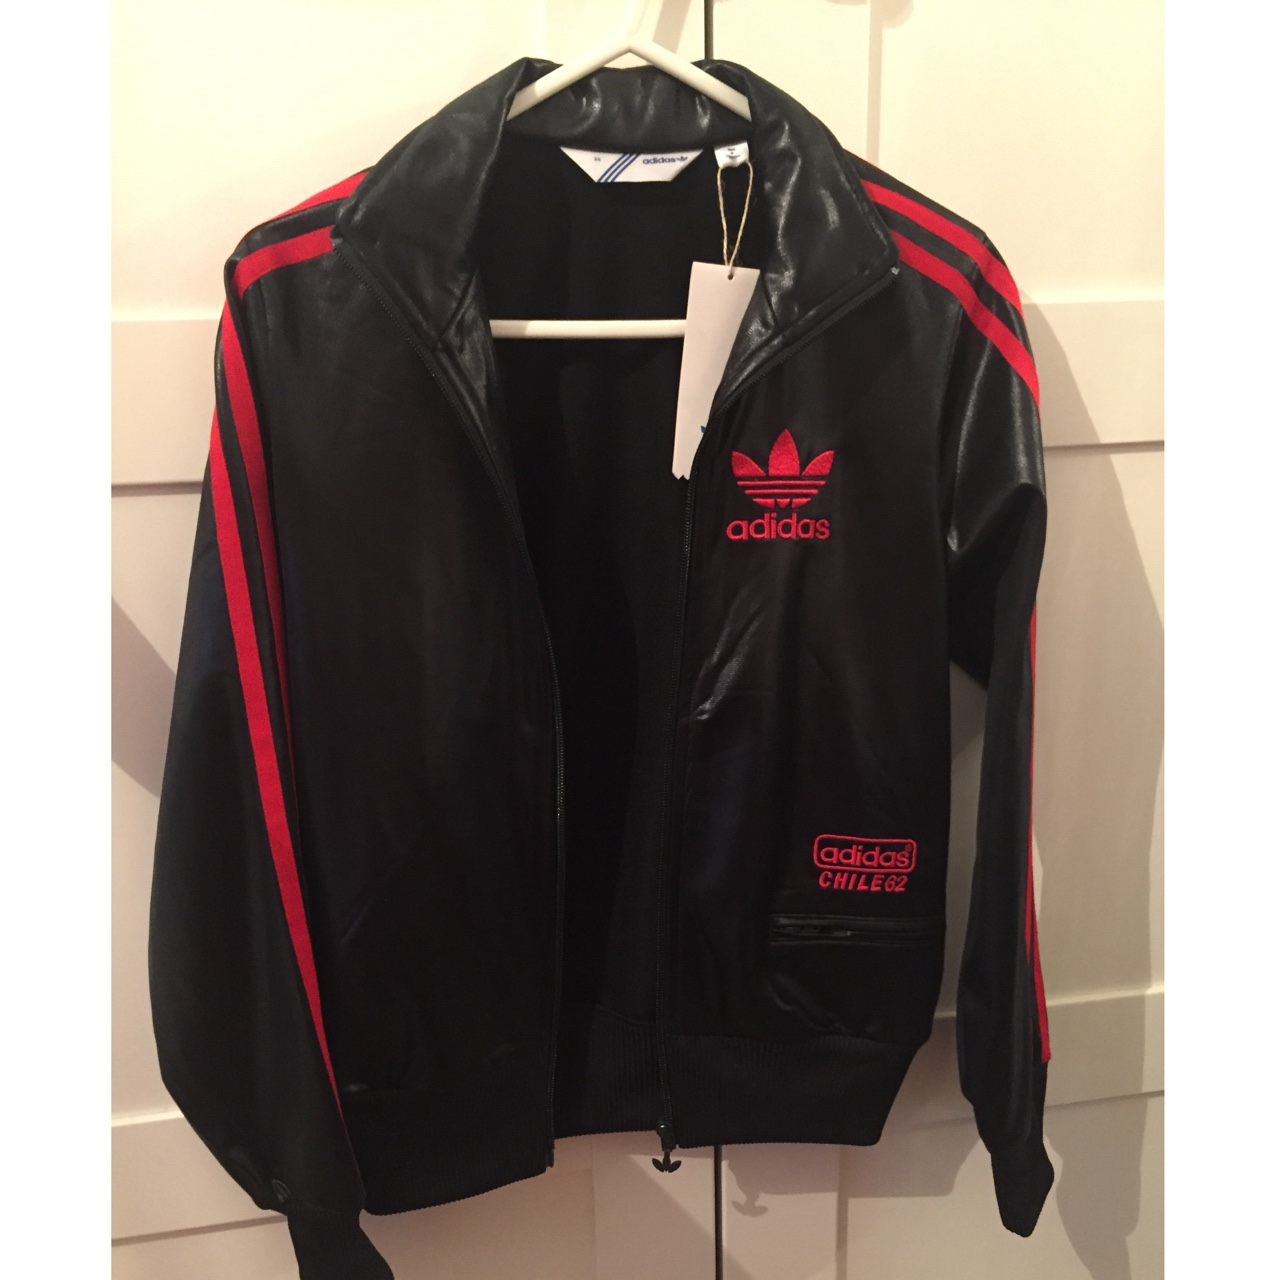 Brand new with tags. Adidas Chile 62 black jacket Depop